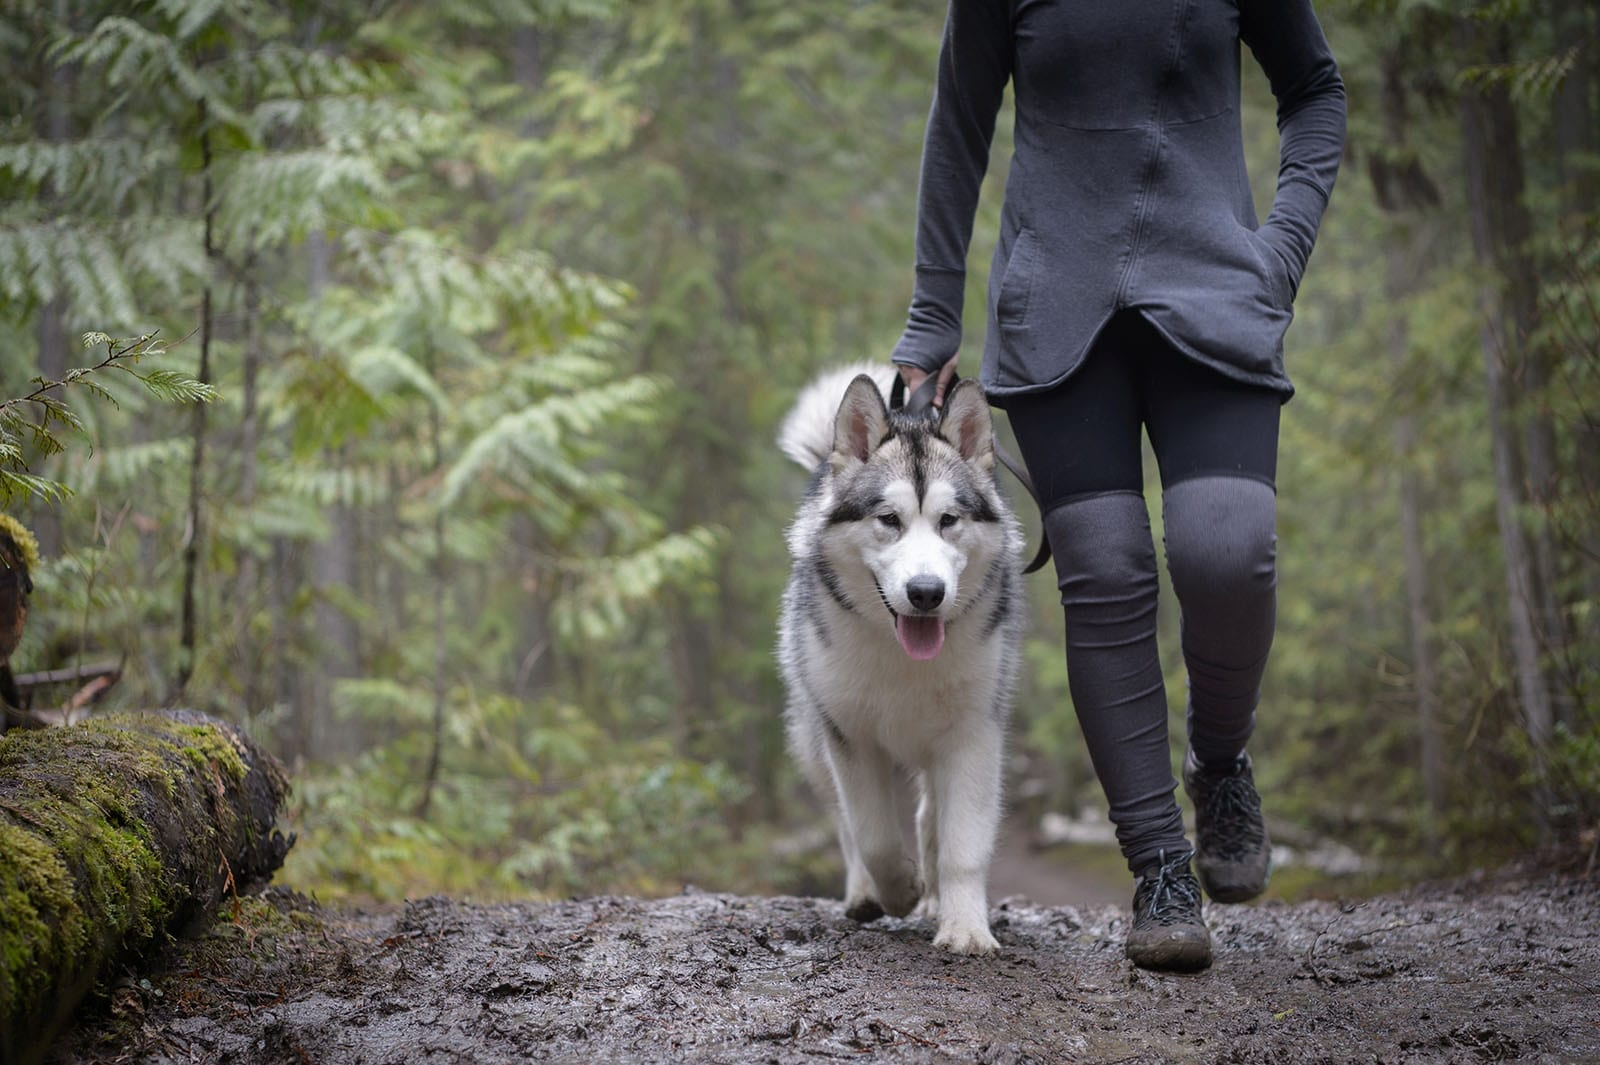 Husky dog wearing a leash being walked through a wet forest trail